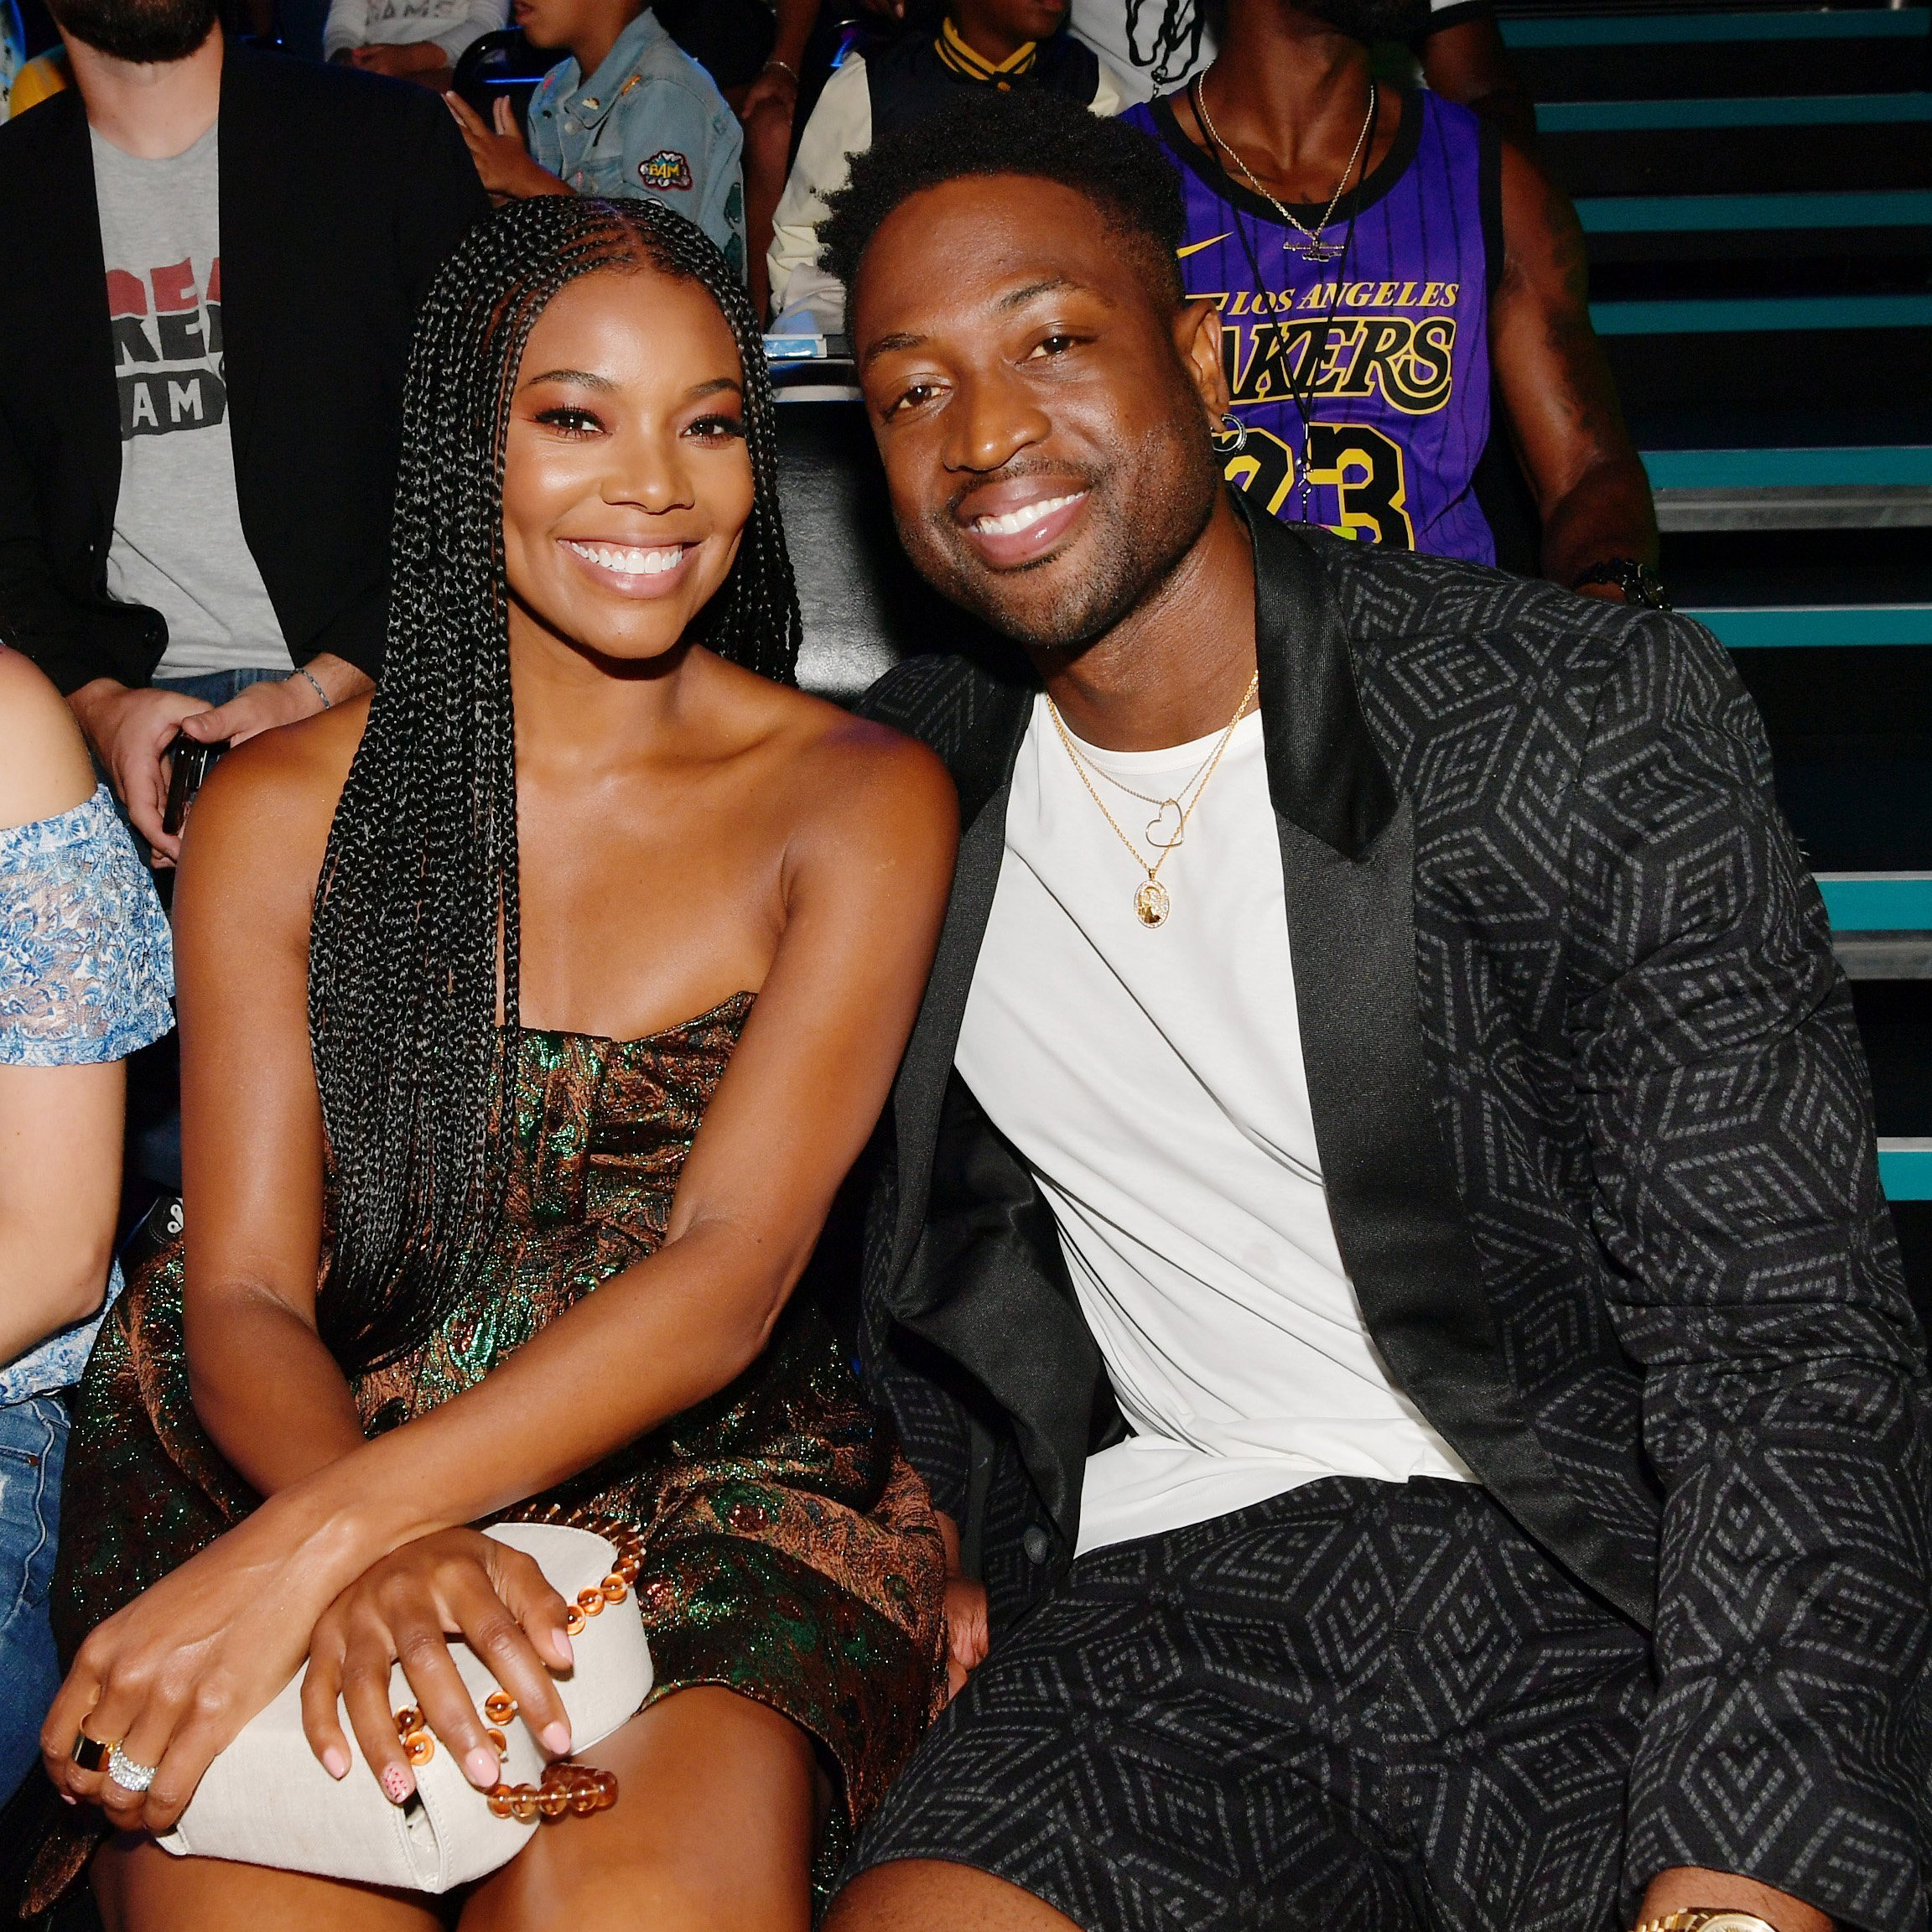 Gabrielle Union and Dwayne Wade attend Nickelodeon Kids' Choice Sports 2019 in Santa Monica, California on July 11, 2019 | Photo: Getty Images